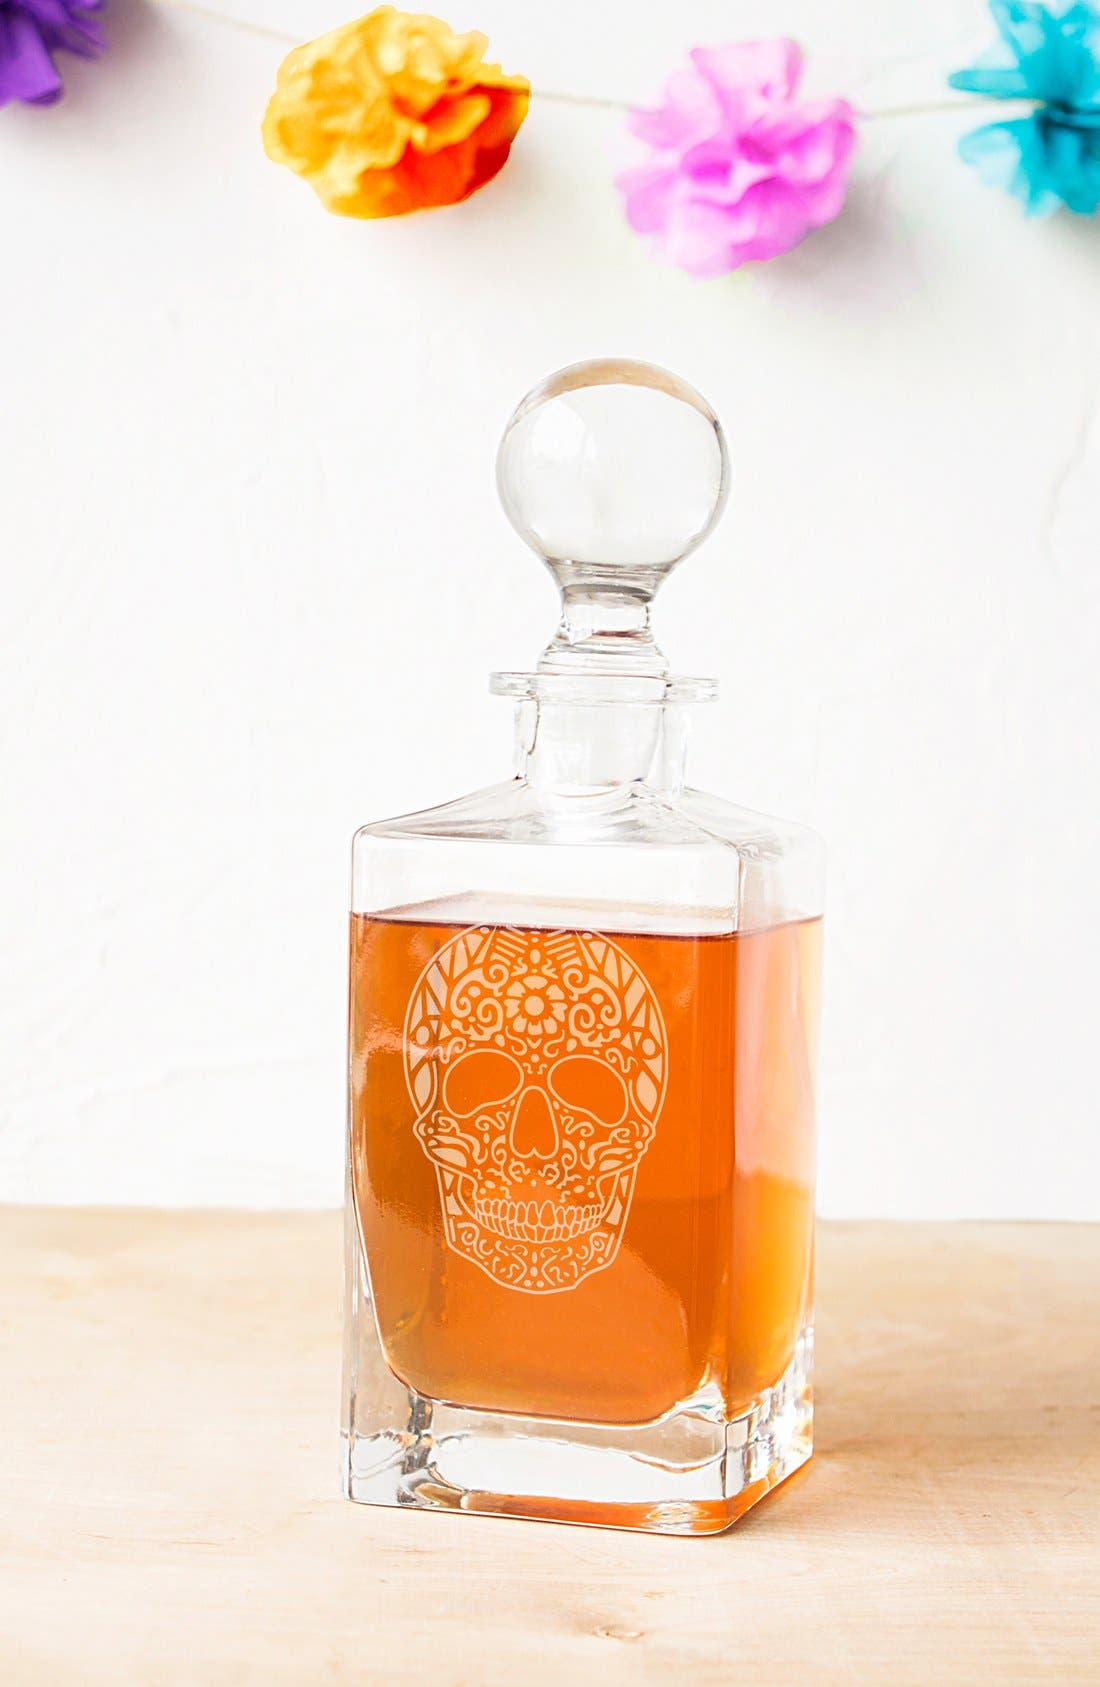 Cathy's Concepts 'Sugar Skull' Glass Decanter